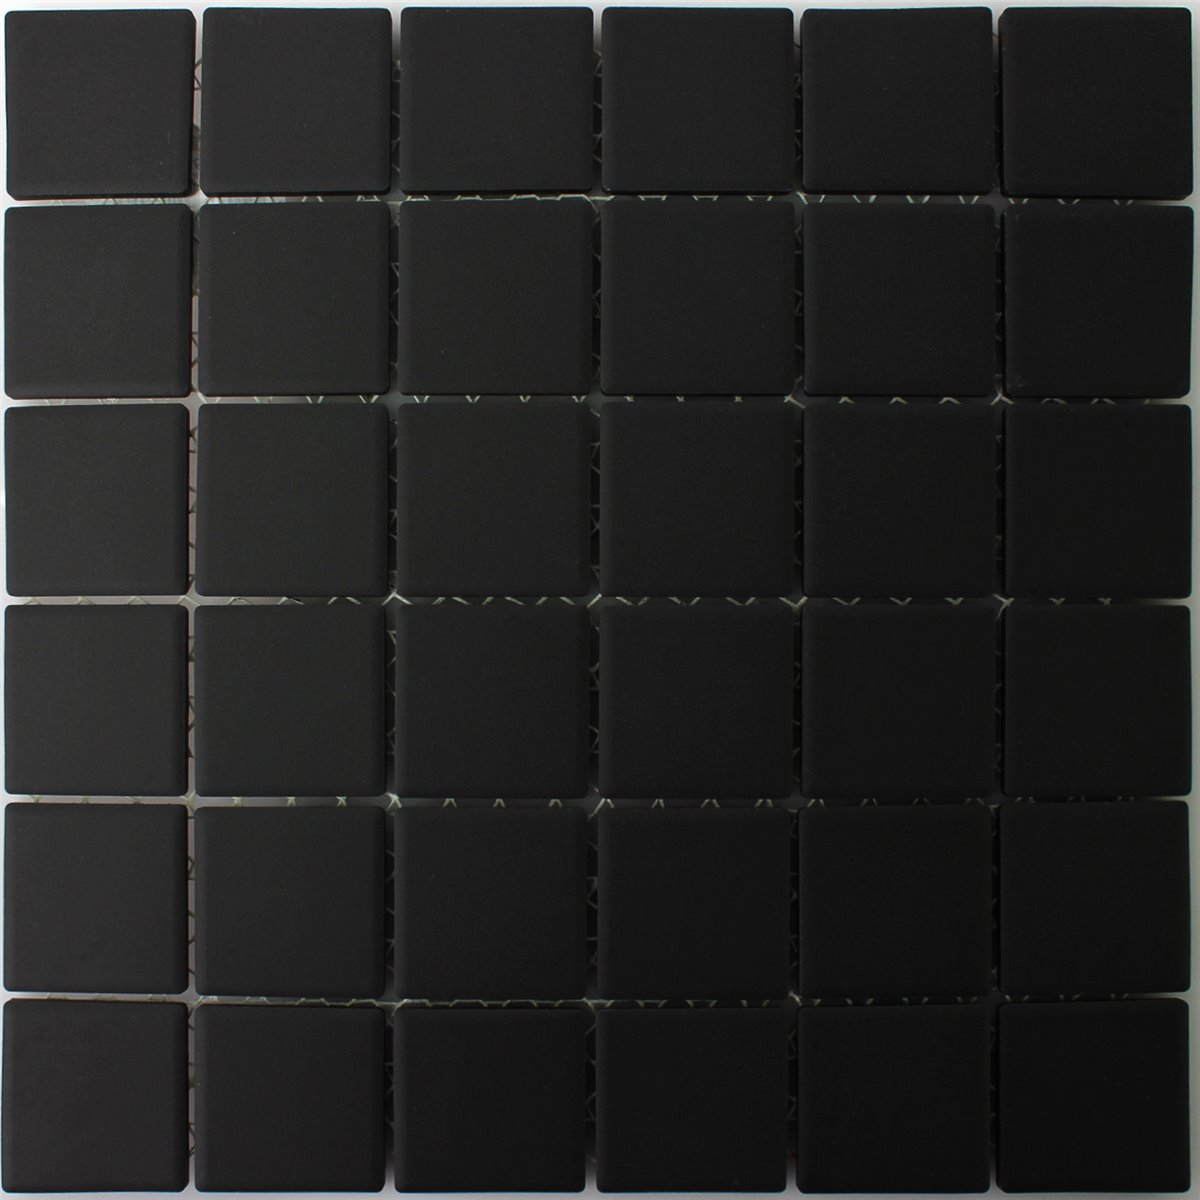 Ceramic mosaic tiles black uni non slip unglazed tm33346 mosaic tiles ceramic black uni non slip unglazed dailygadgetfo Images